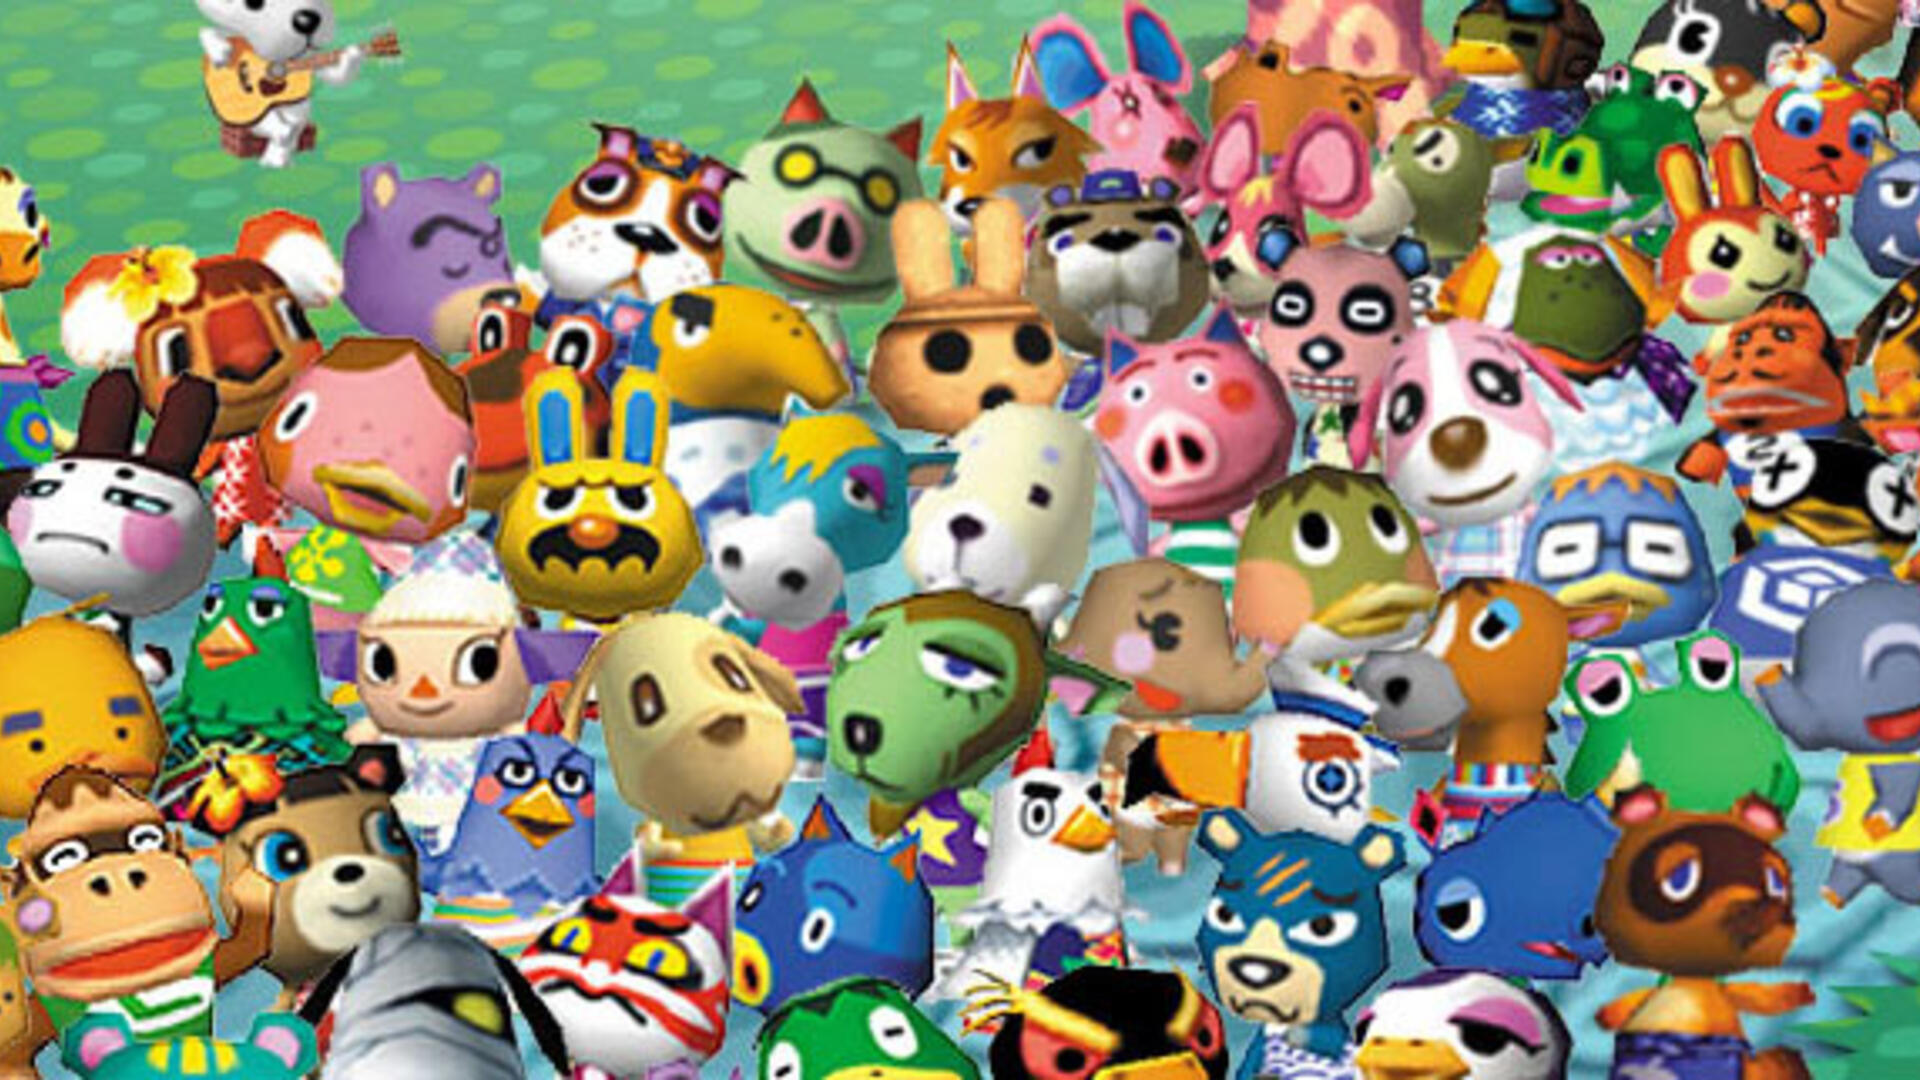 Does Animal Crossing Stress Anyone Else Out? | USgamer